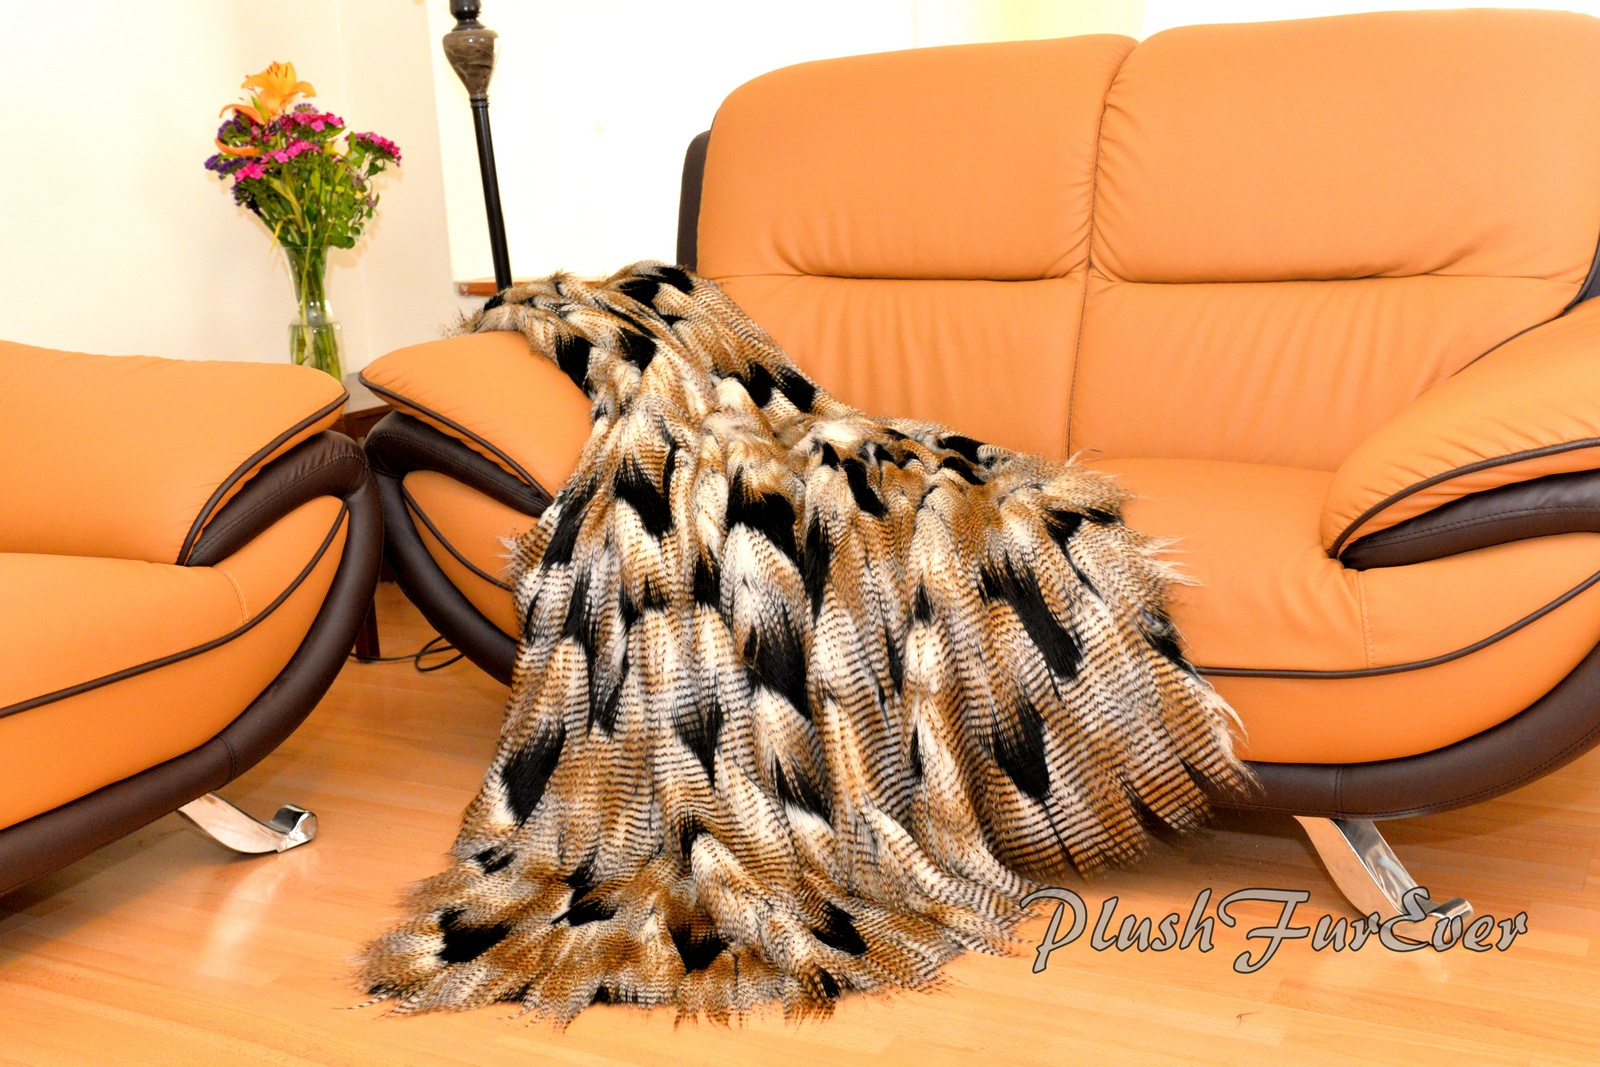 Superb Fancy Feather Fur Throw 60 X 72 Rectangle Blanket Sofa Couch Comforters Gold Black White Ostrich Luxurious Super Soft Machost Co Dining Chair Design Ideas Machostcouk